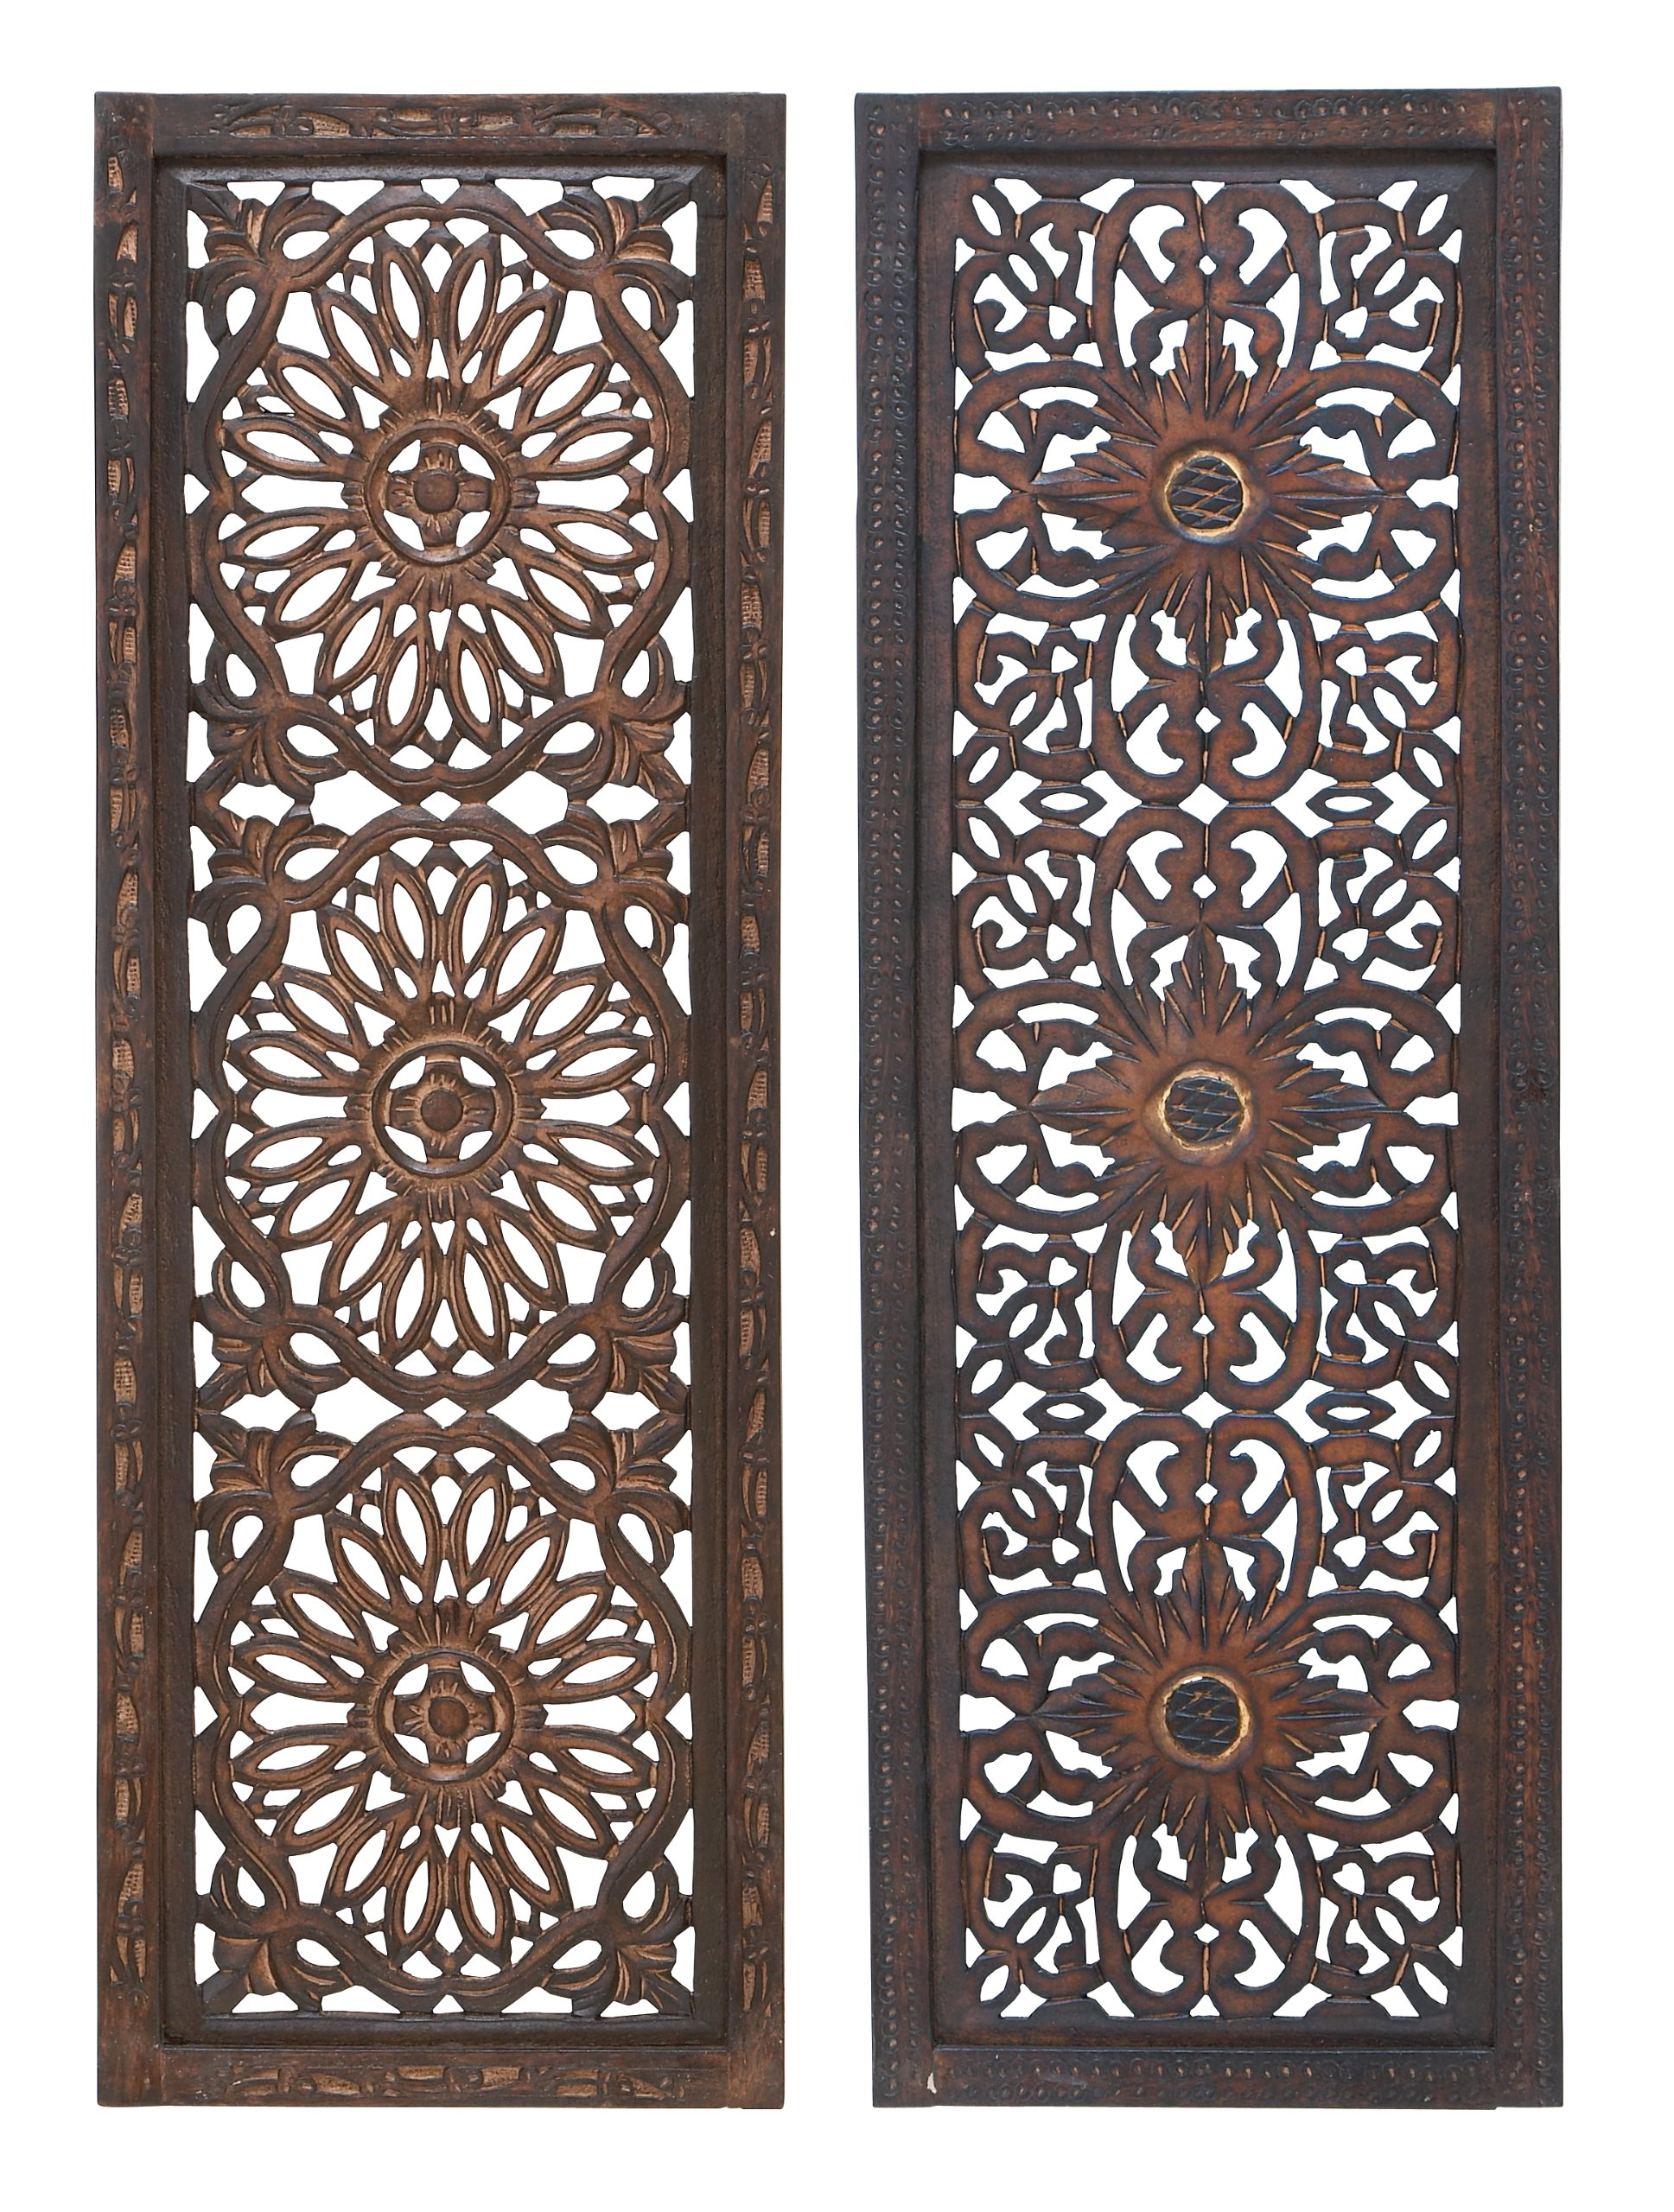 Deco 34087 Elegant Sculpture 2 Assorted Wood Wall Panel by Deco 79